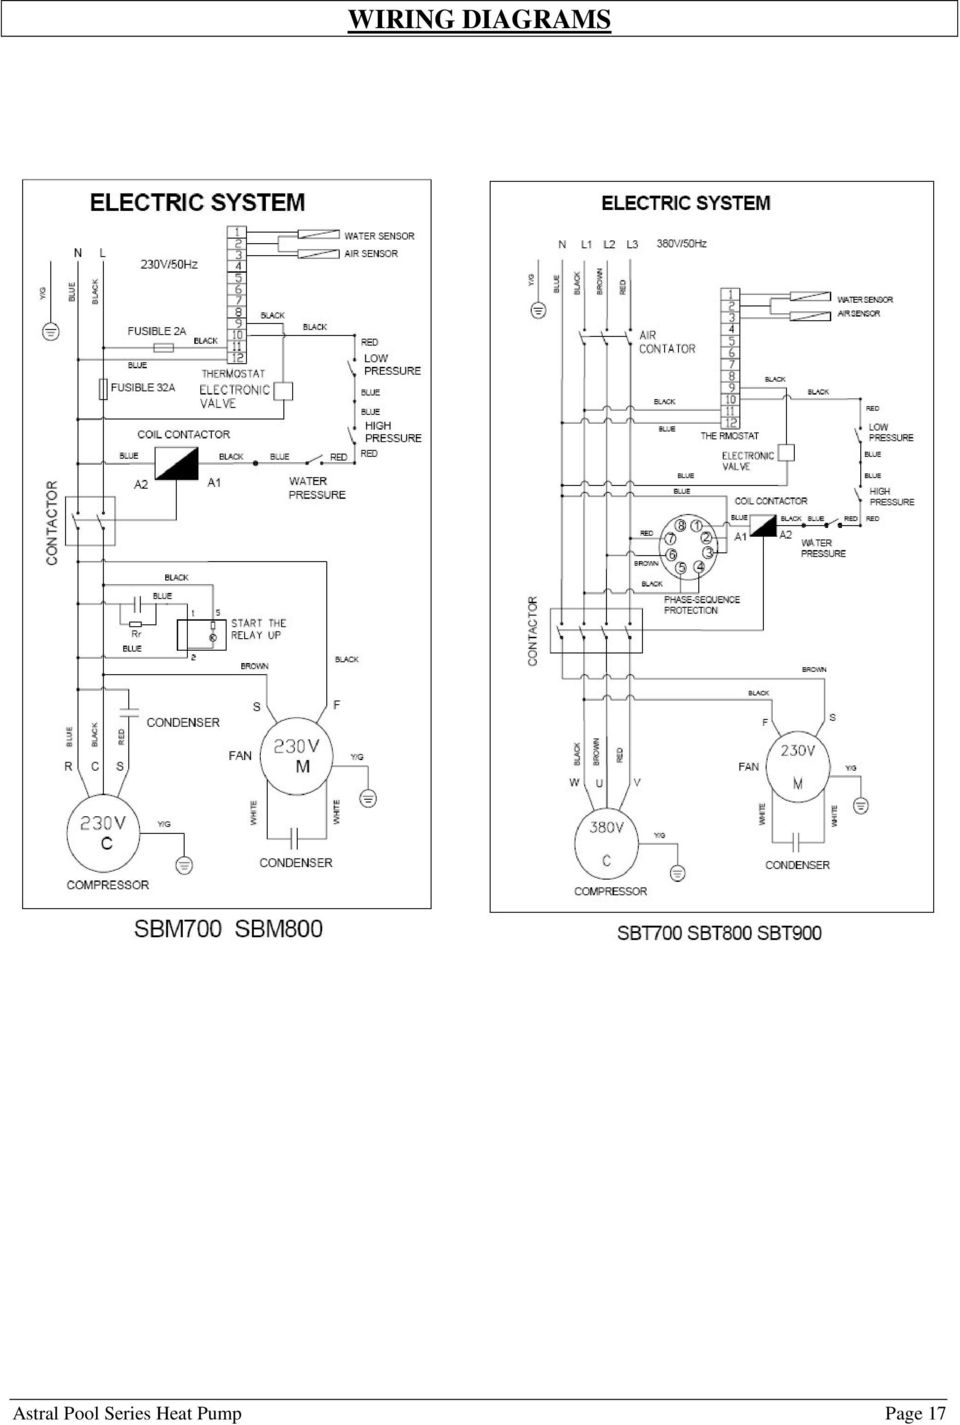 hight resolution of 18 wiring diagrams b600 astral pool series heat pump page 18